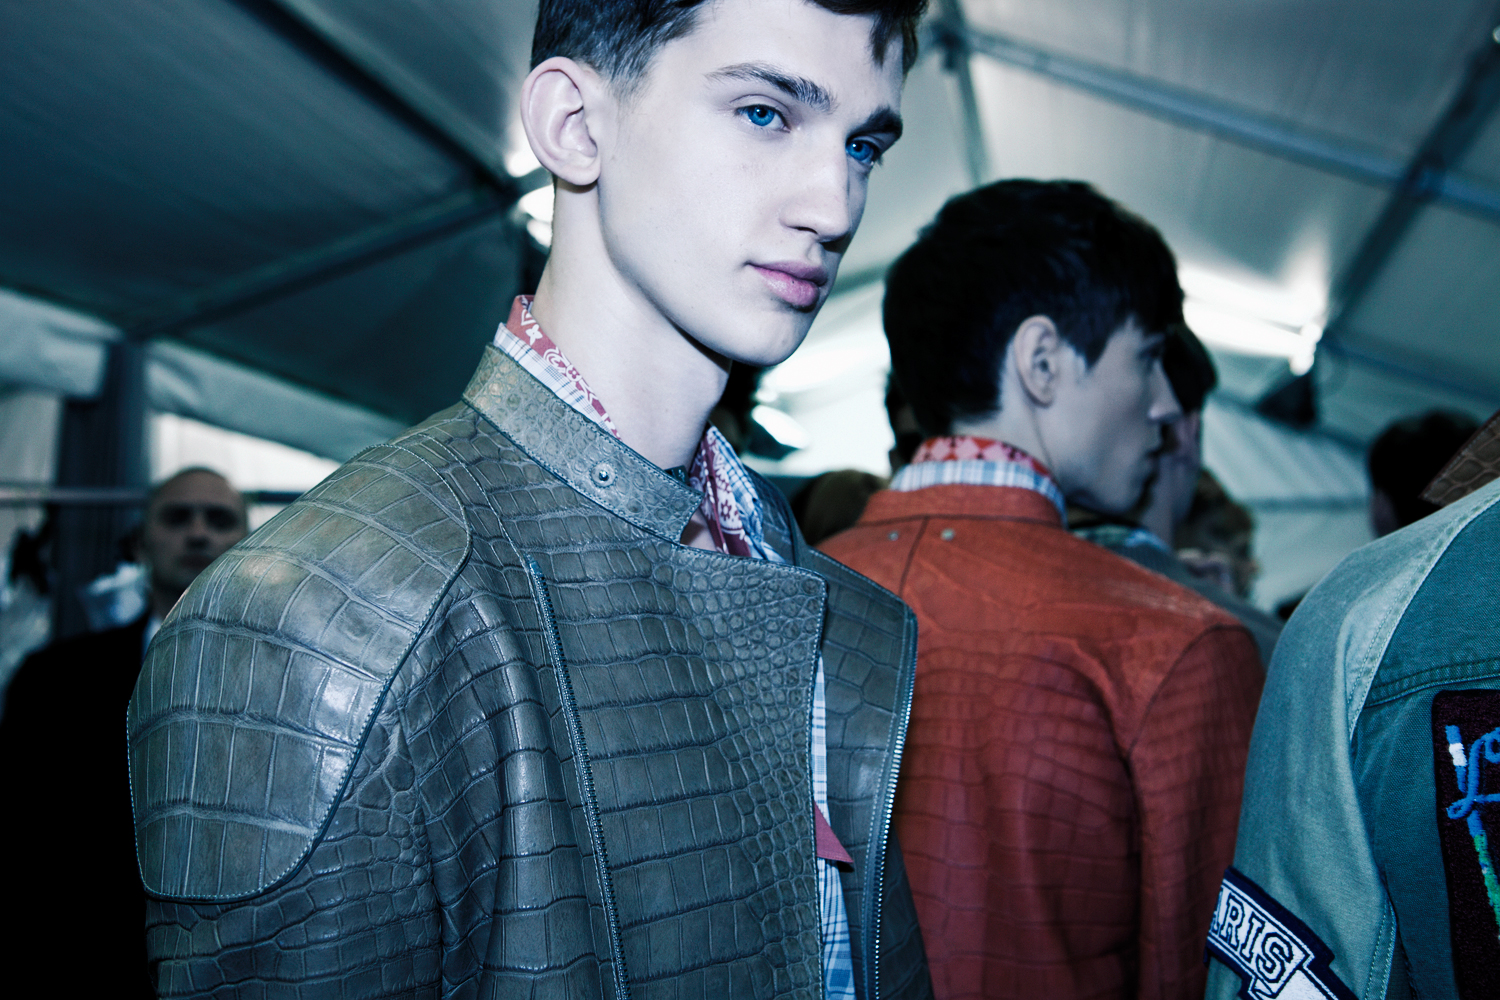 HERO MAGAZINE SS14 3.1 LOUIS VUITTON BACKSTAGE Alexandre Sallé de Chou IMG_7165